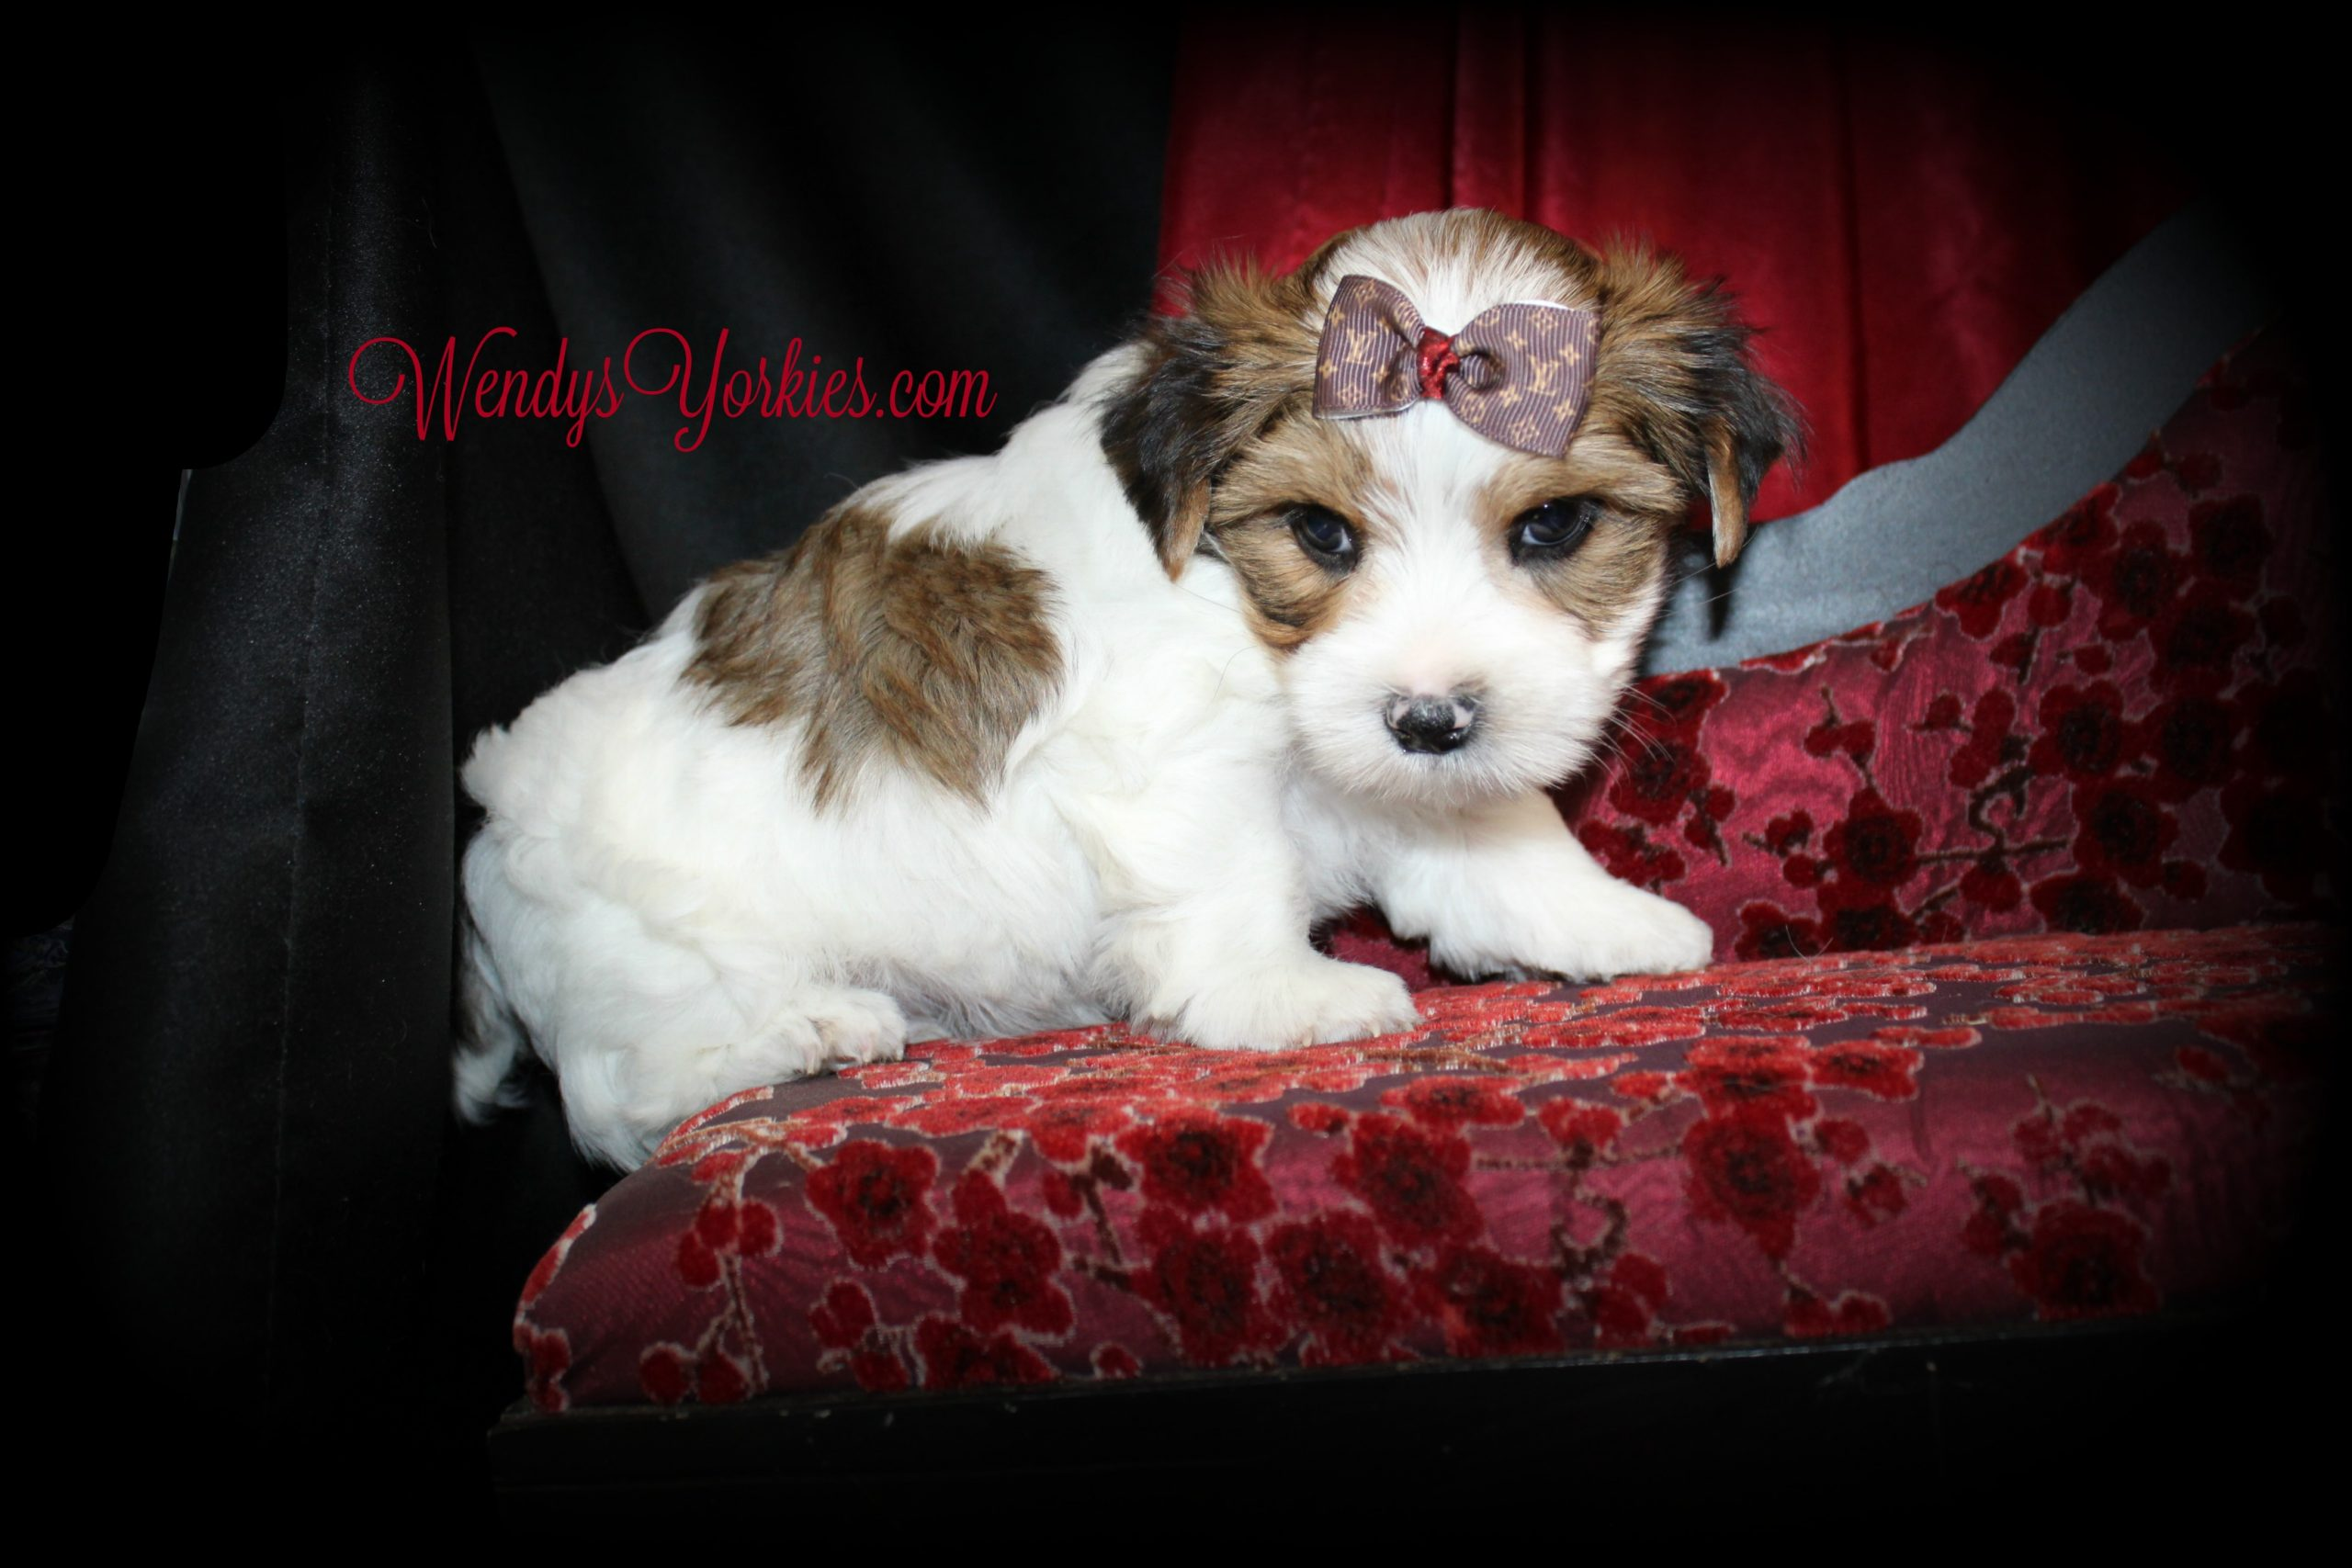 Male Parti Yorkie puppy for sale, Reese m1, WendysYorkies.com